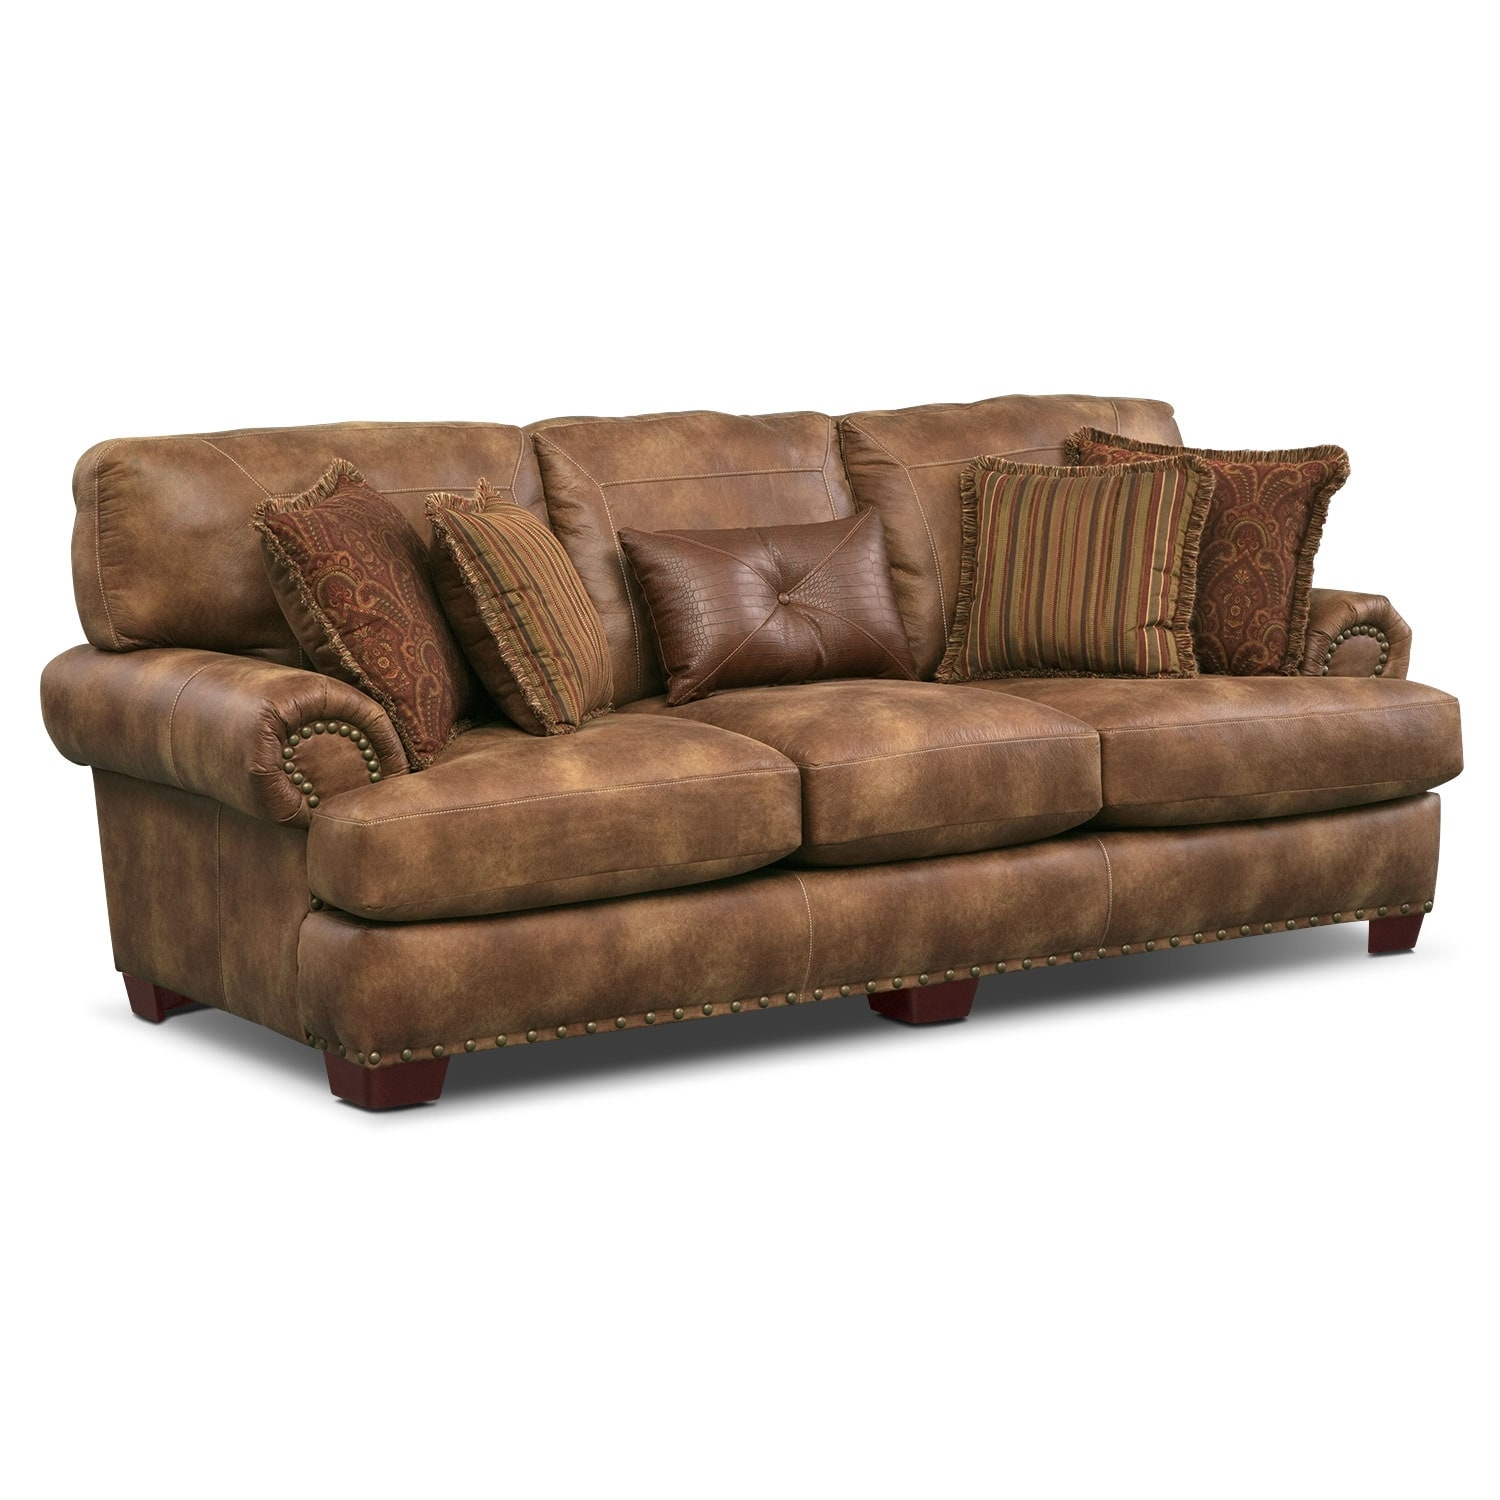 Burlington Sofa - Cognac